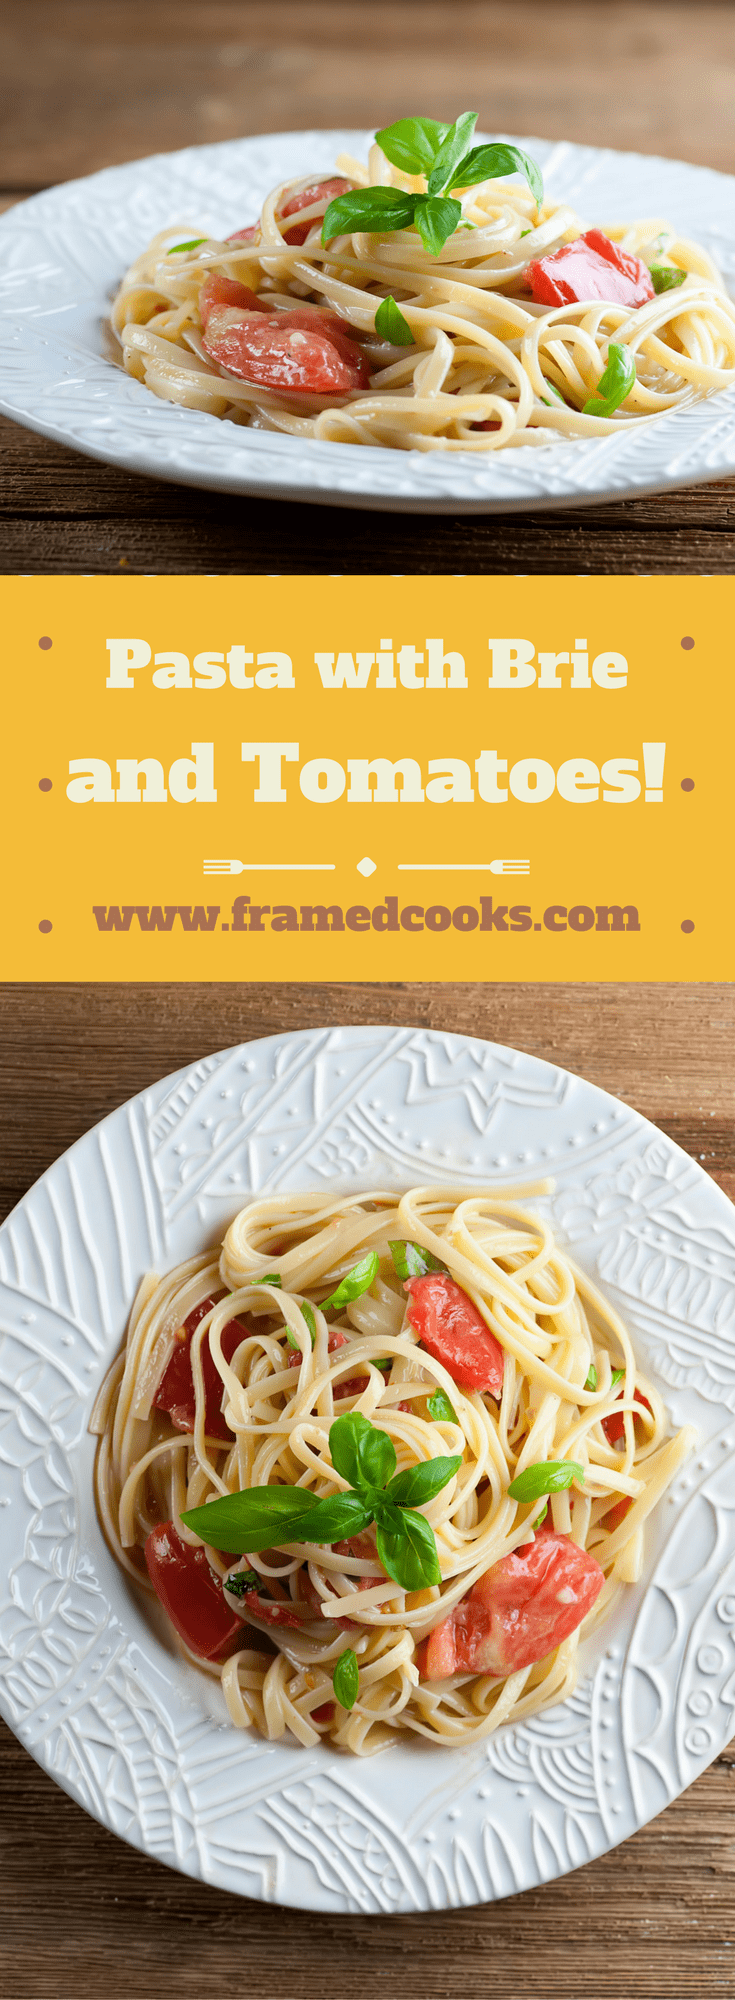 This easy recipe for pasta with Brie and tomatoes is a summertime classic, full of the flavors of cheese and basil and sweet tomato!